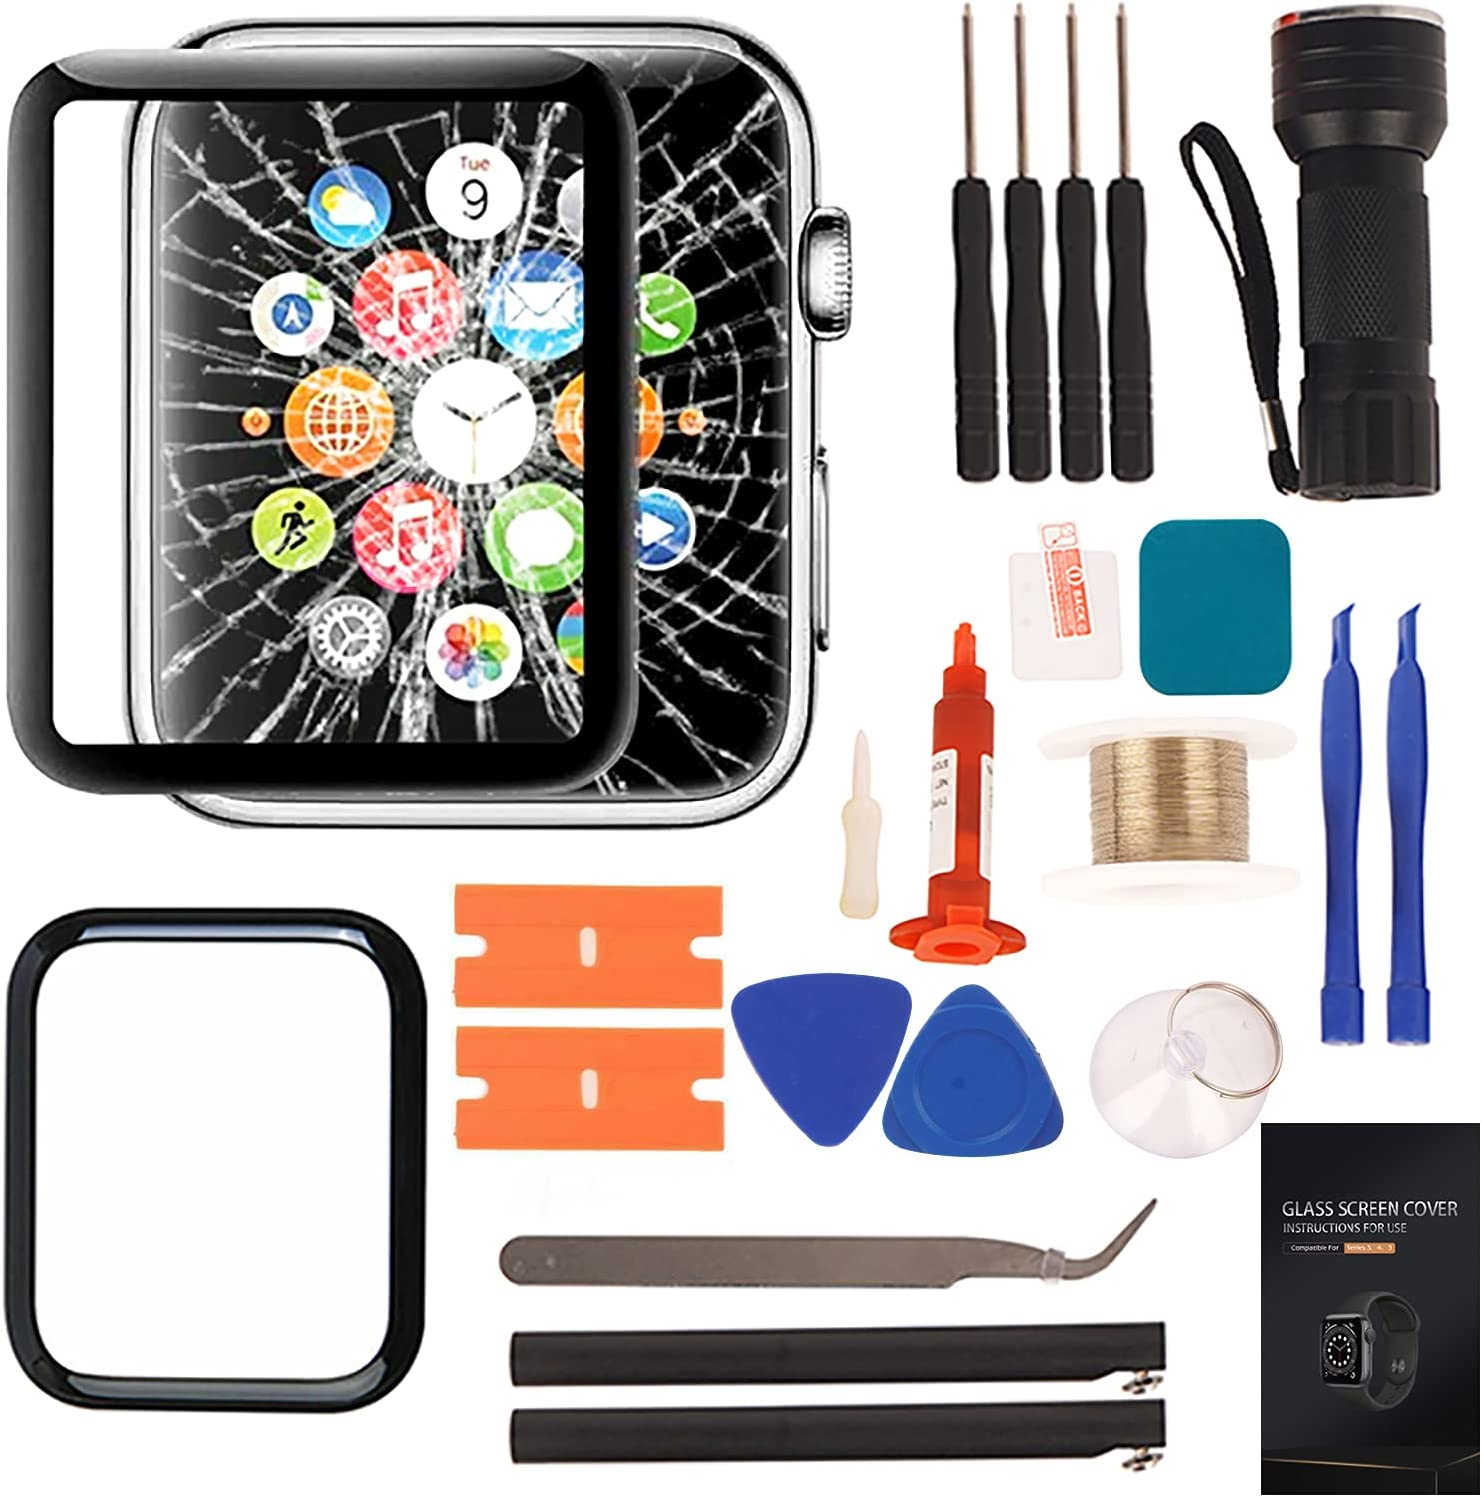 Compatible with Apple Watch 4 Screen Replacement - Front LCD Glass Lens Replacement Repair Kit & Compatible with Apple Watch Series 4 40mm Glass Replacement(No LCD Screen and Touch Digitizer)